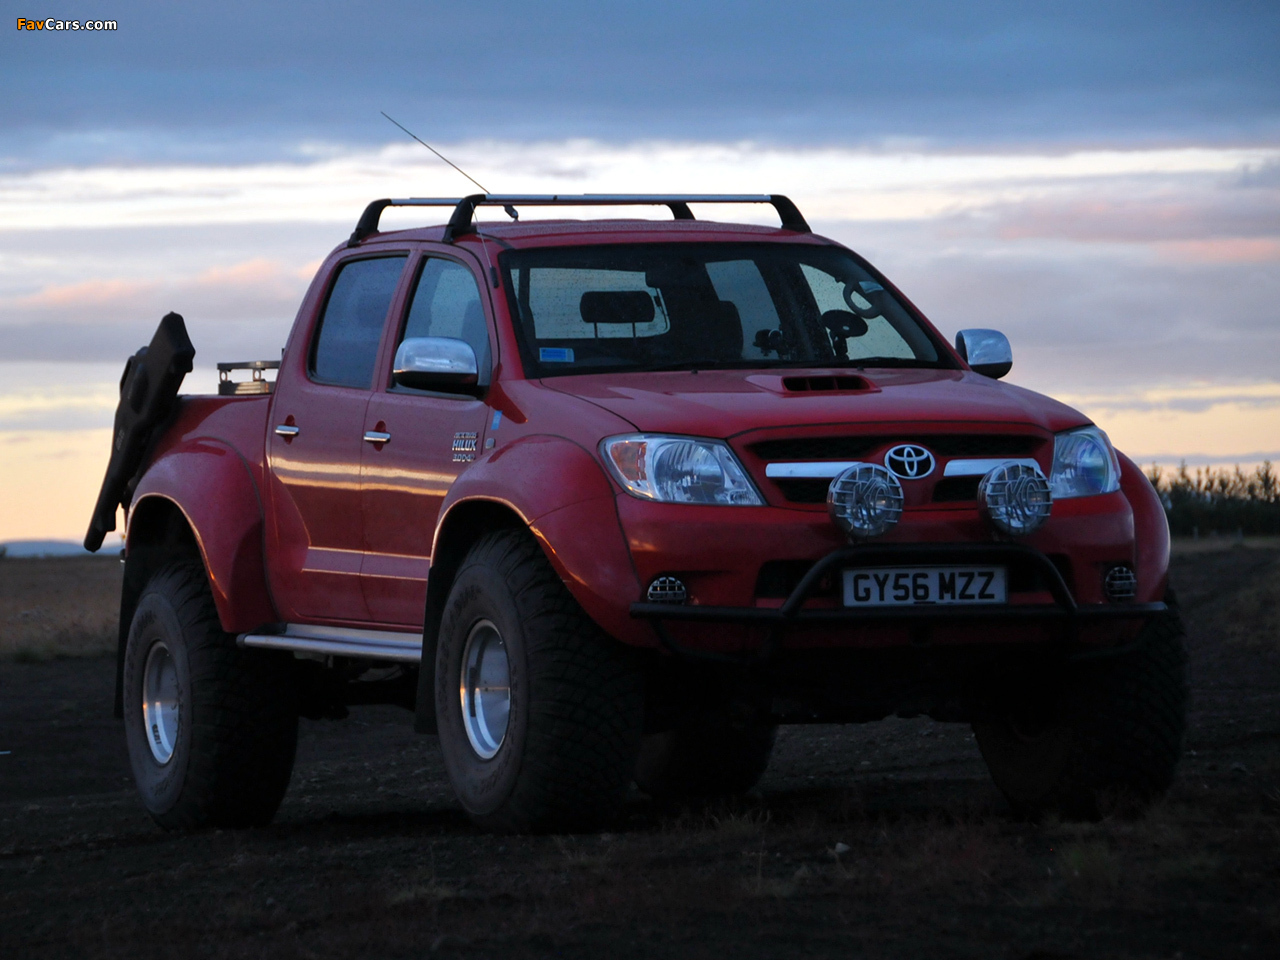 Photos Of Arctic Trucks Toyota Hilux Invincible At38 2007